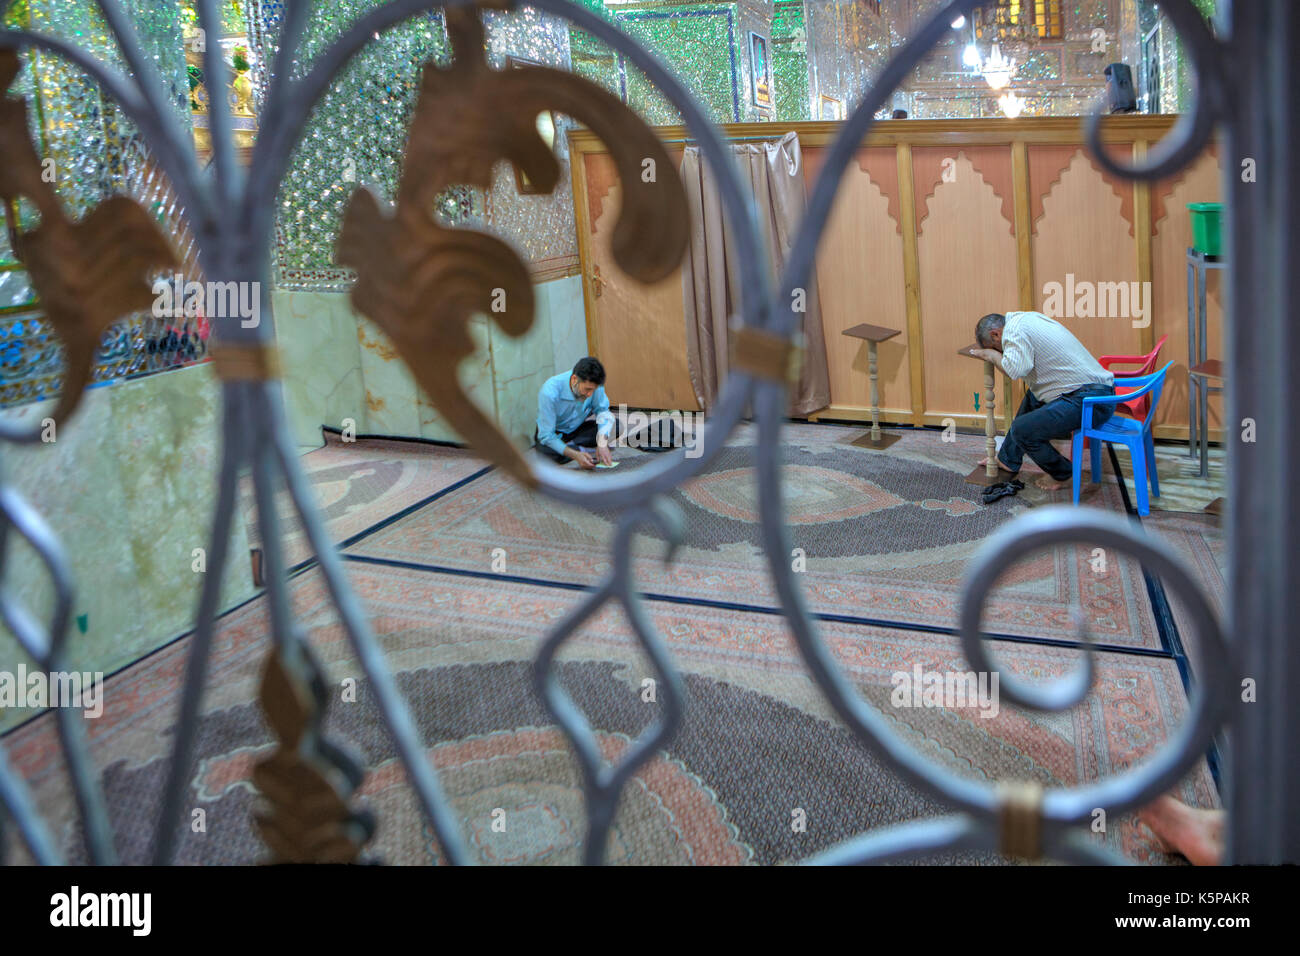 Fars Province, Shiraz, Iran - 18 april, 2017:  Muslim Shiite Men praying inside mirrored  Mosque of Sayyed Alaeddin Hossein. - Stock Image